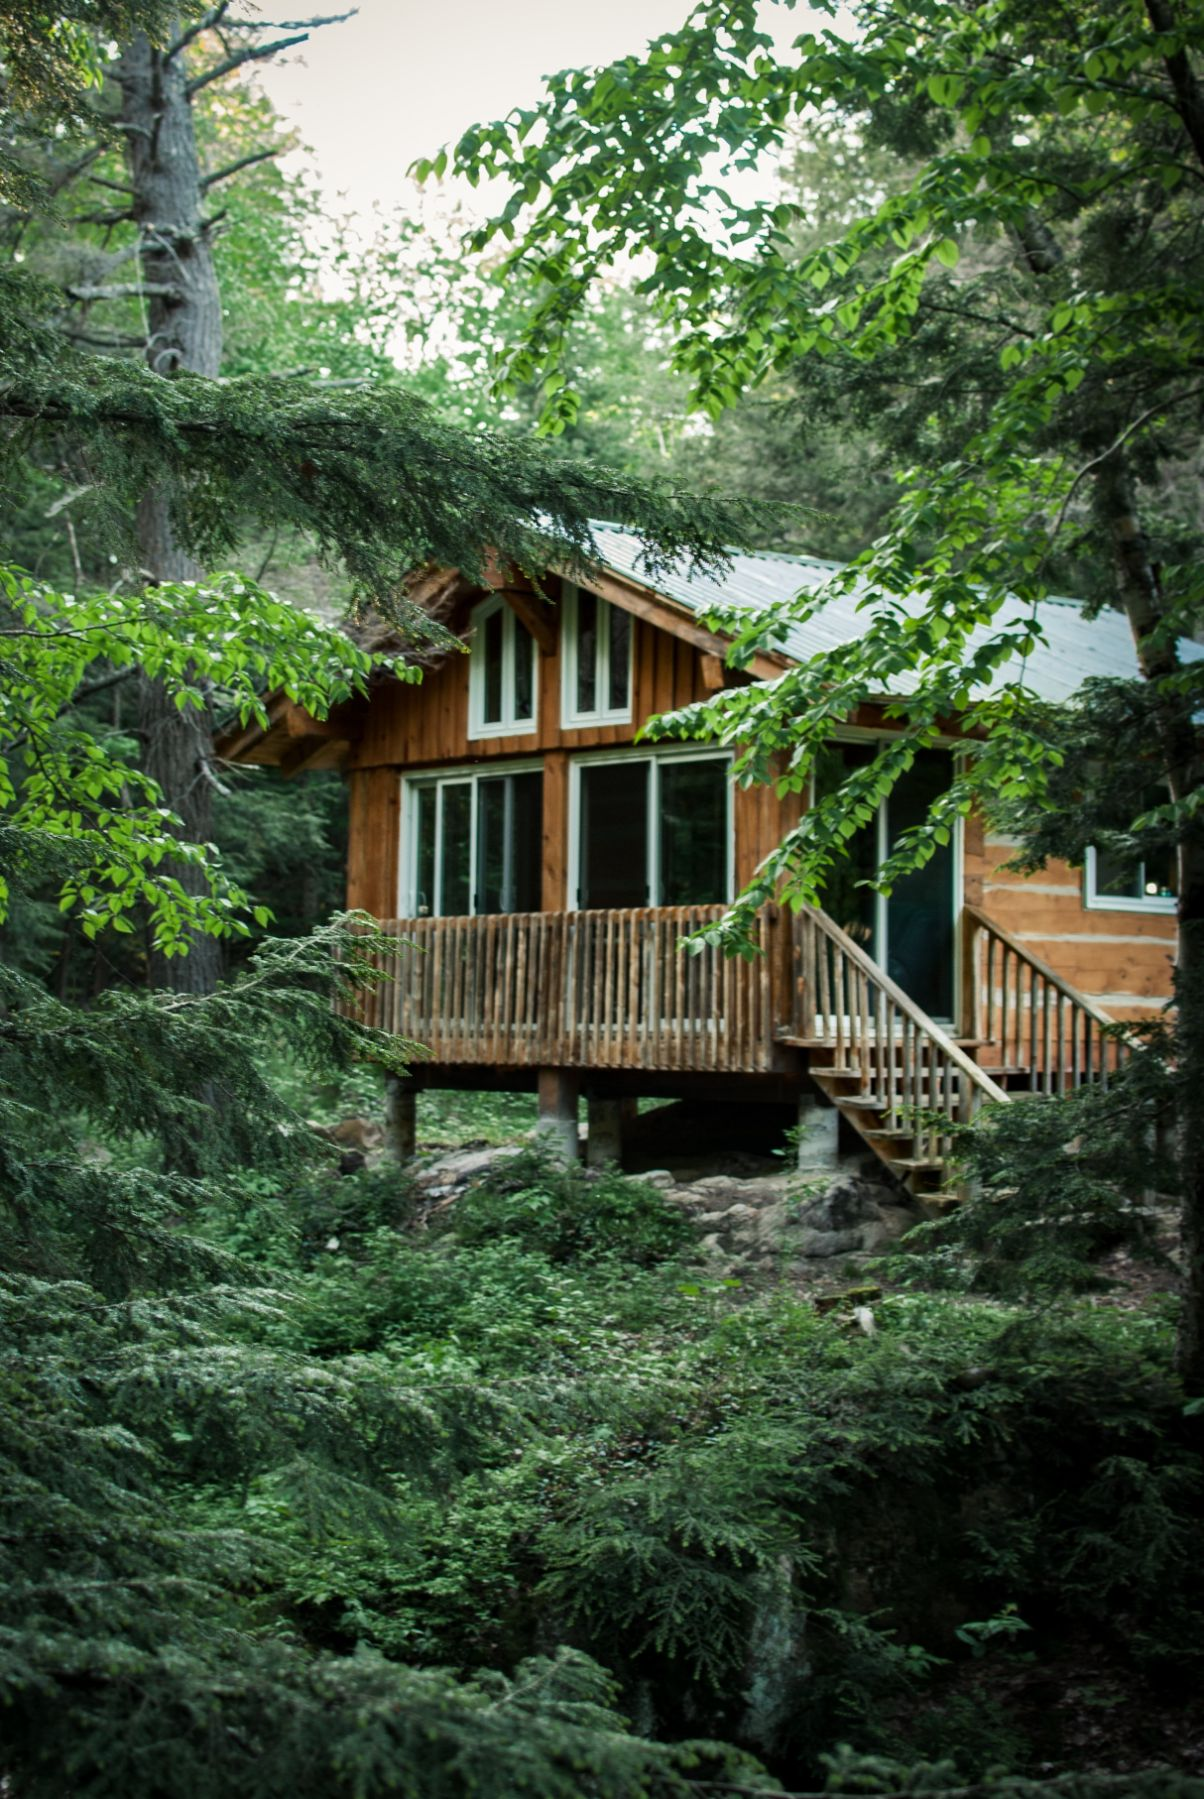 wooden cabin surrounded by greenery